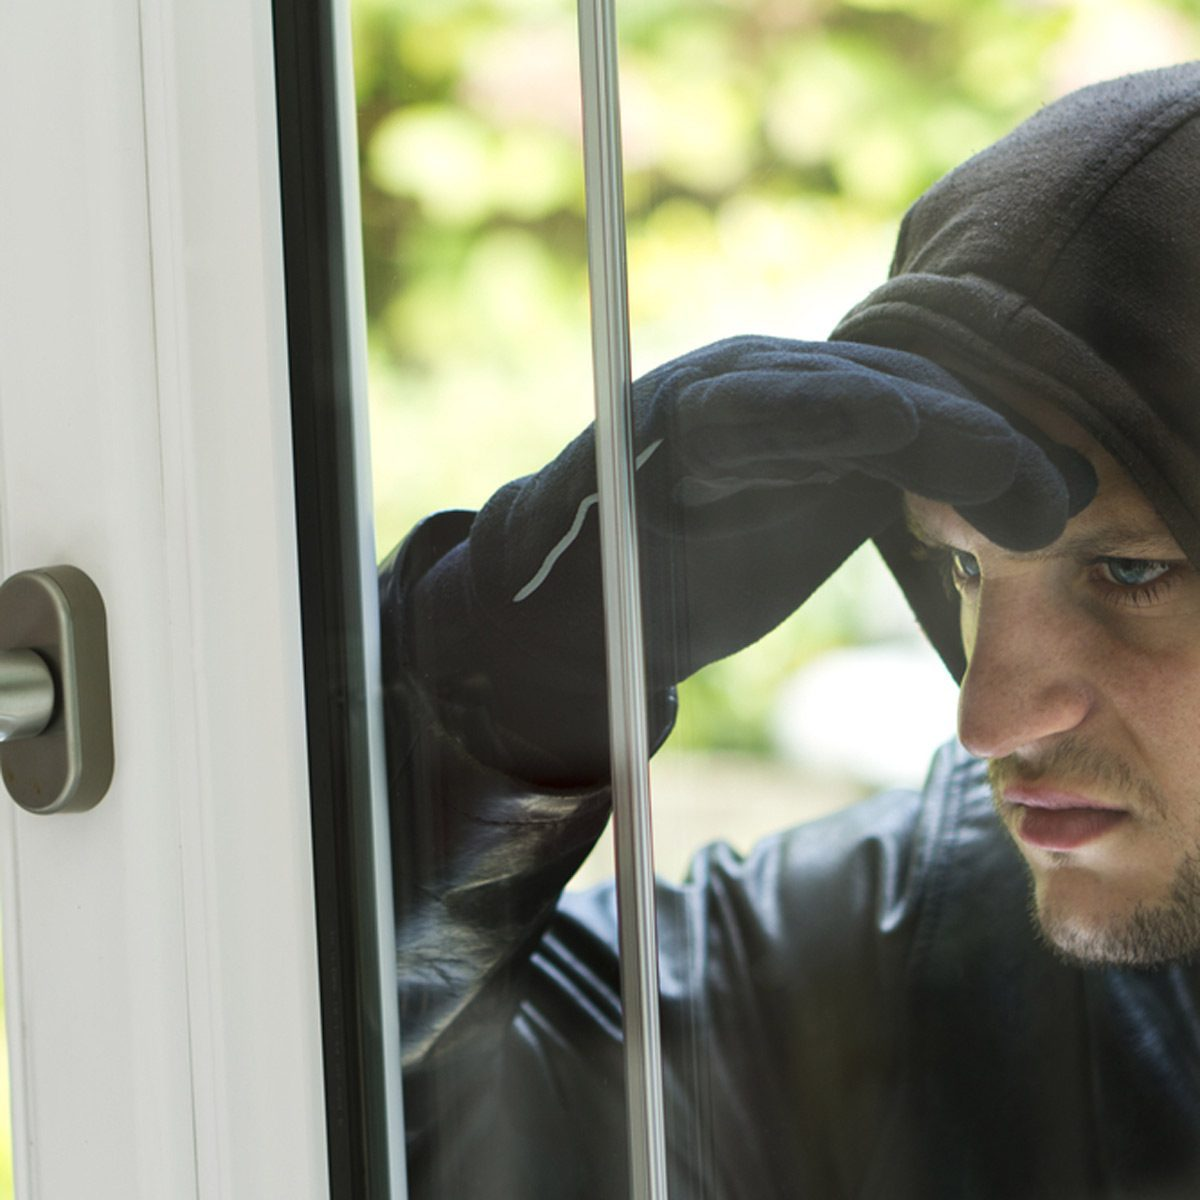 Valuables in plain sight motivate thieves.